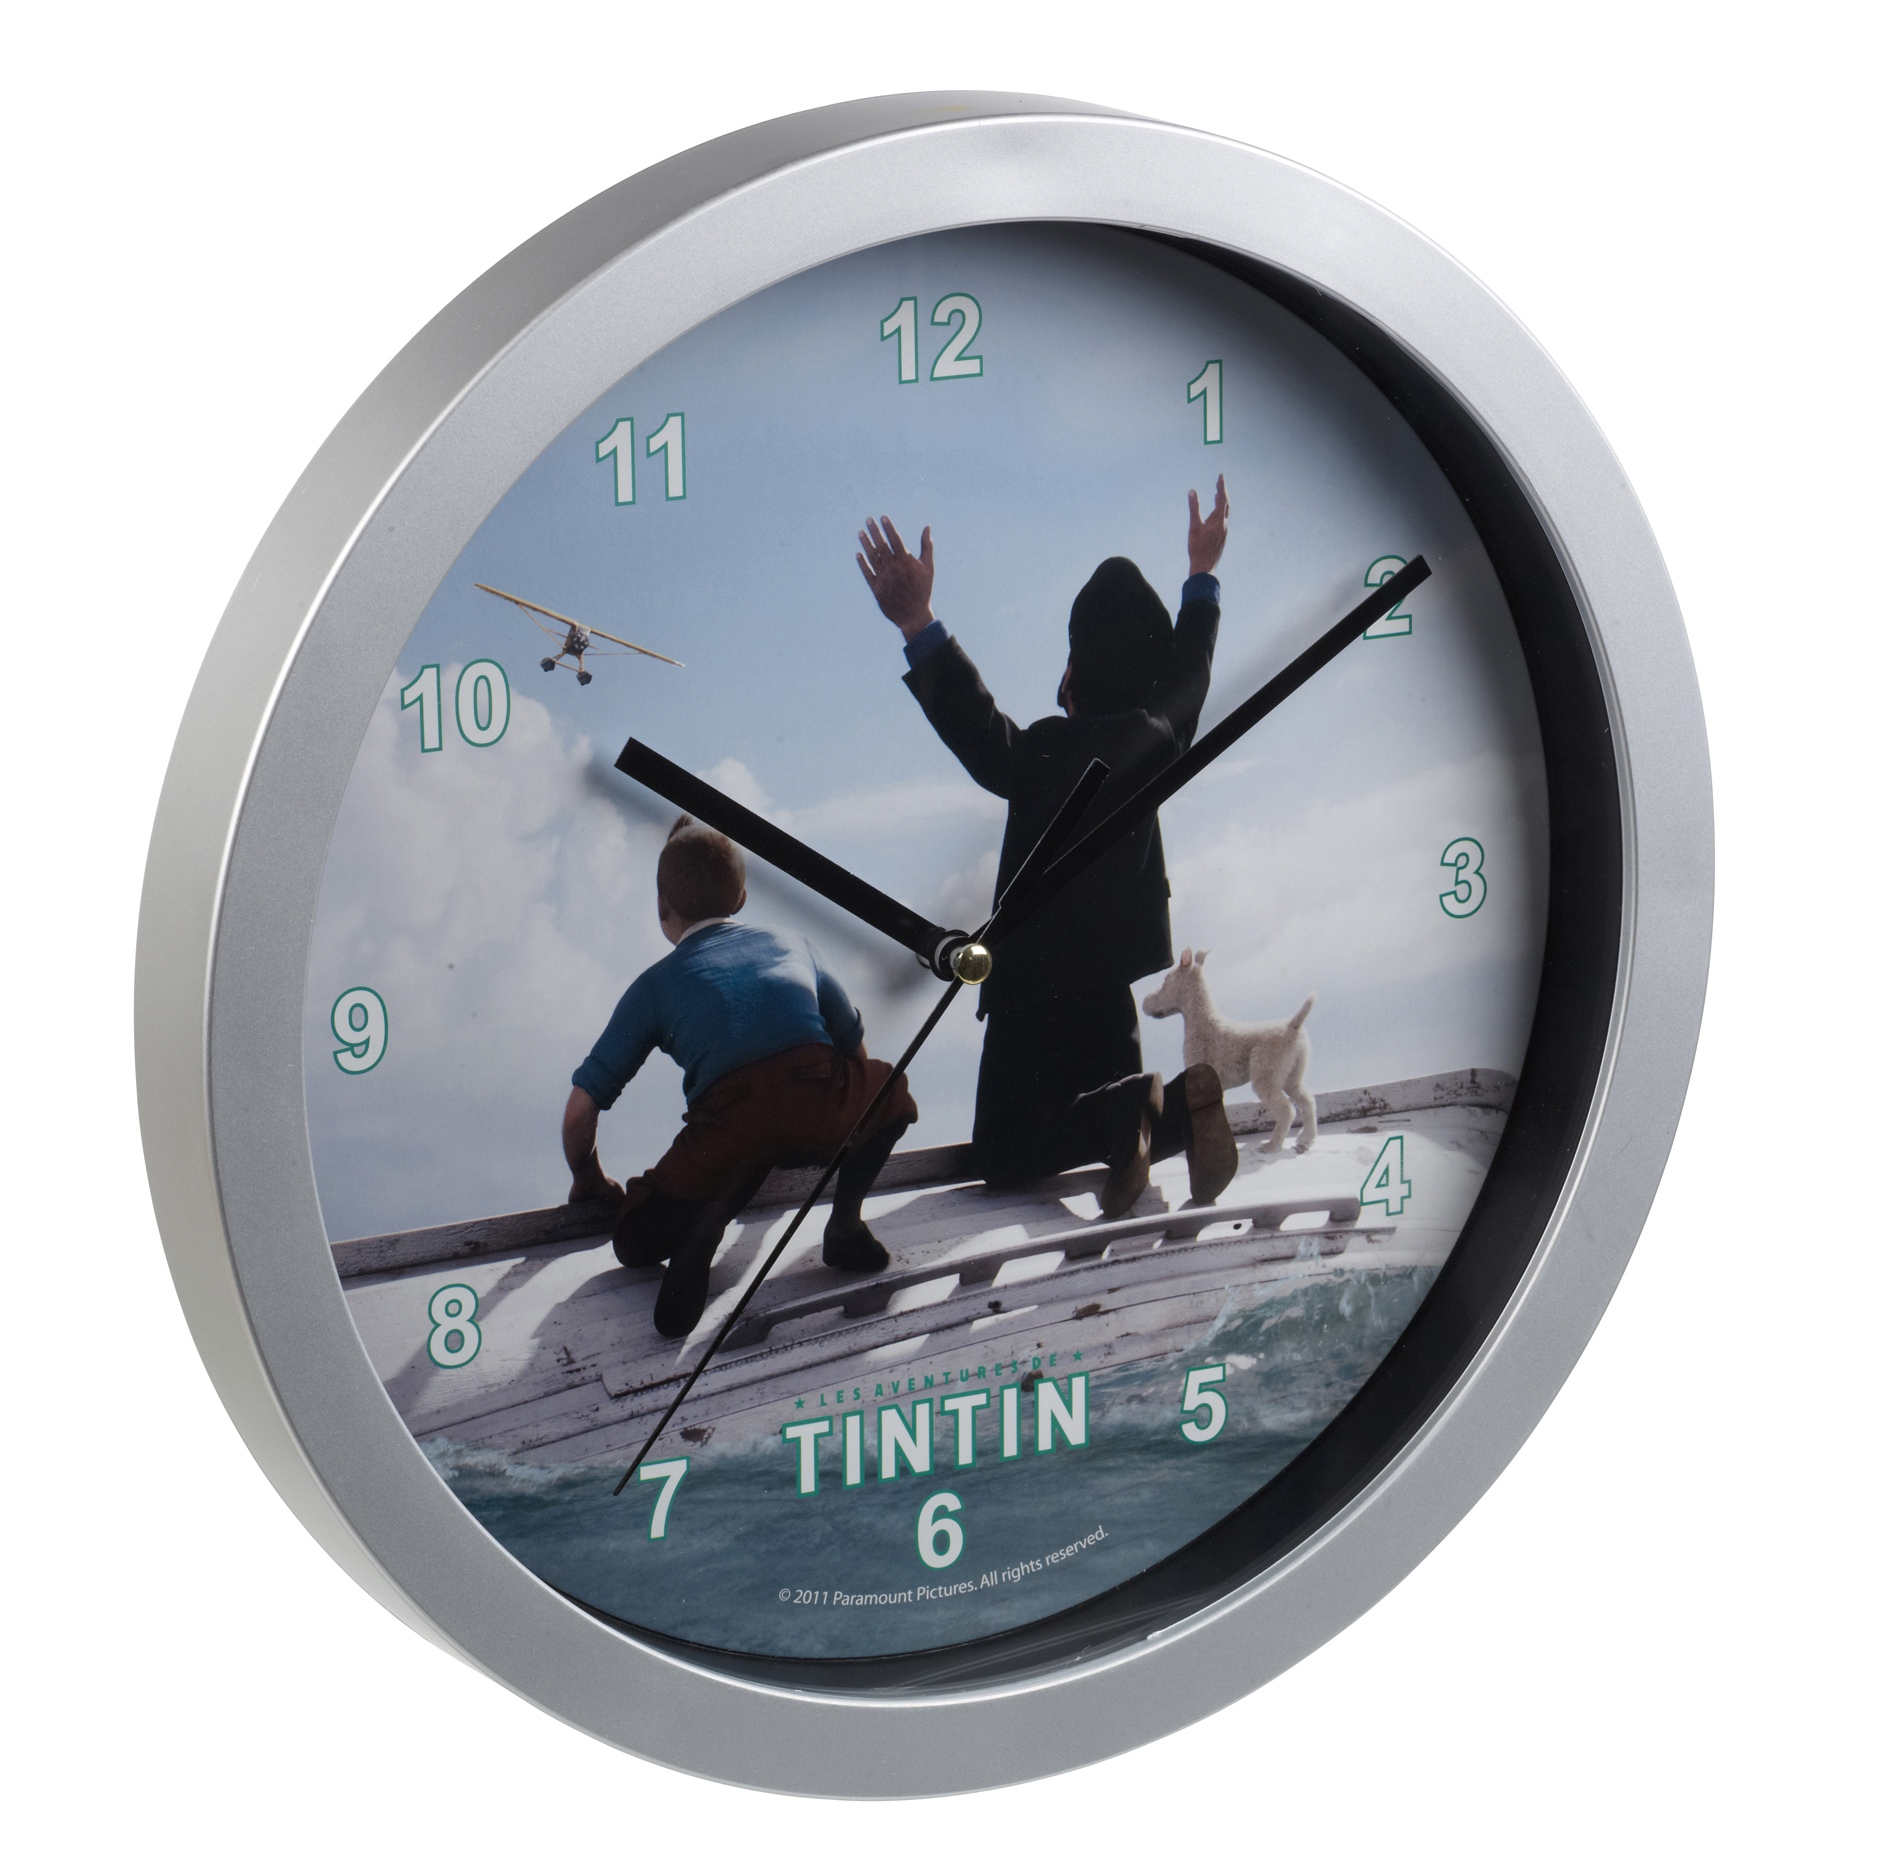 tintin horloge murale chambre enfants salle de jeux. Black Bedroom Furniture Sets. Home Design Ideas